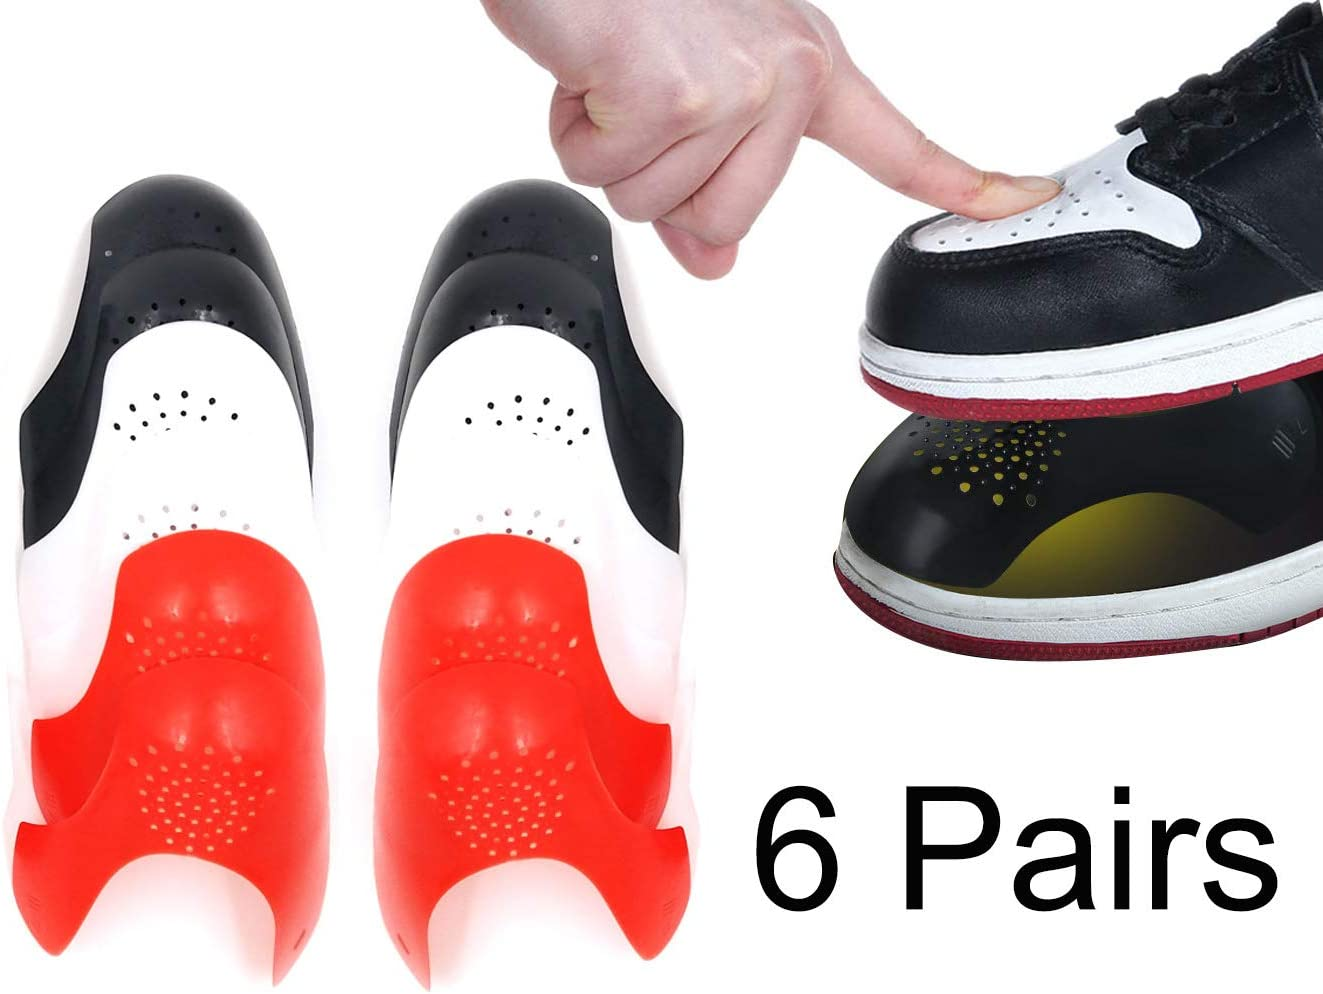 Anti-Wrinkle Shoes Creases Protector 6 Pairs,Prevent Sports Shoes Crease,Against Shoes Indentation,Men's 7-12/ Women's 5-8